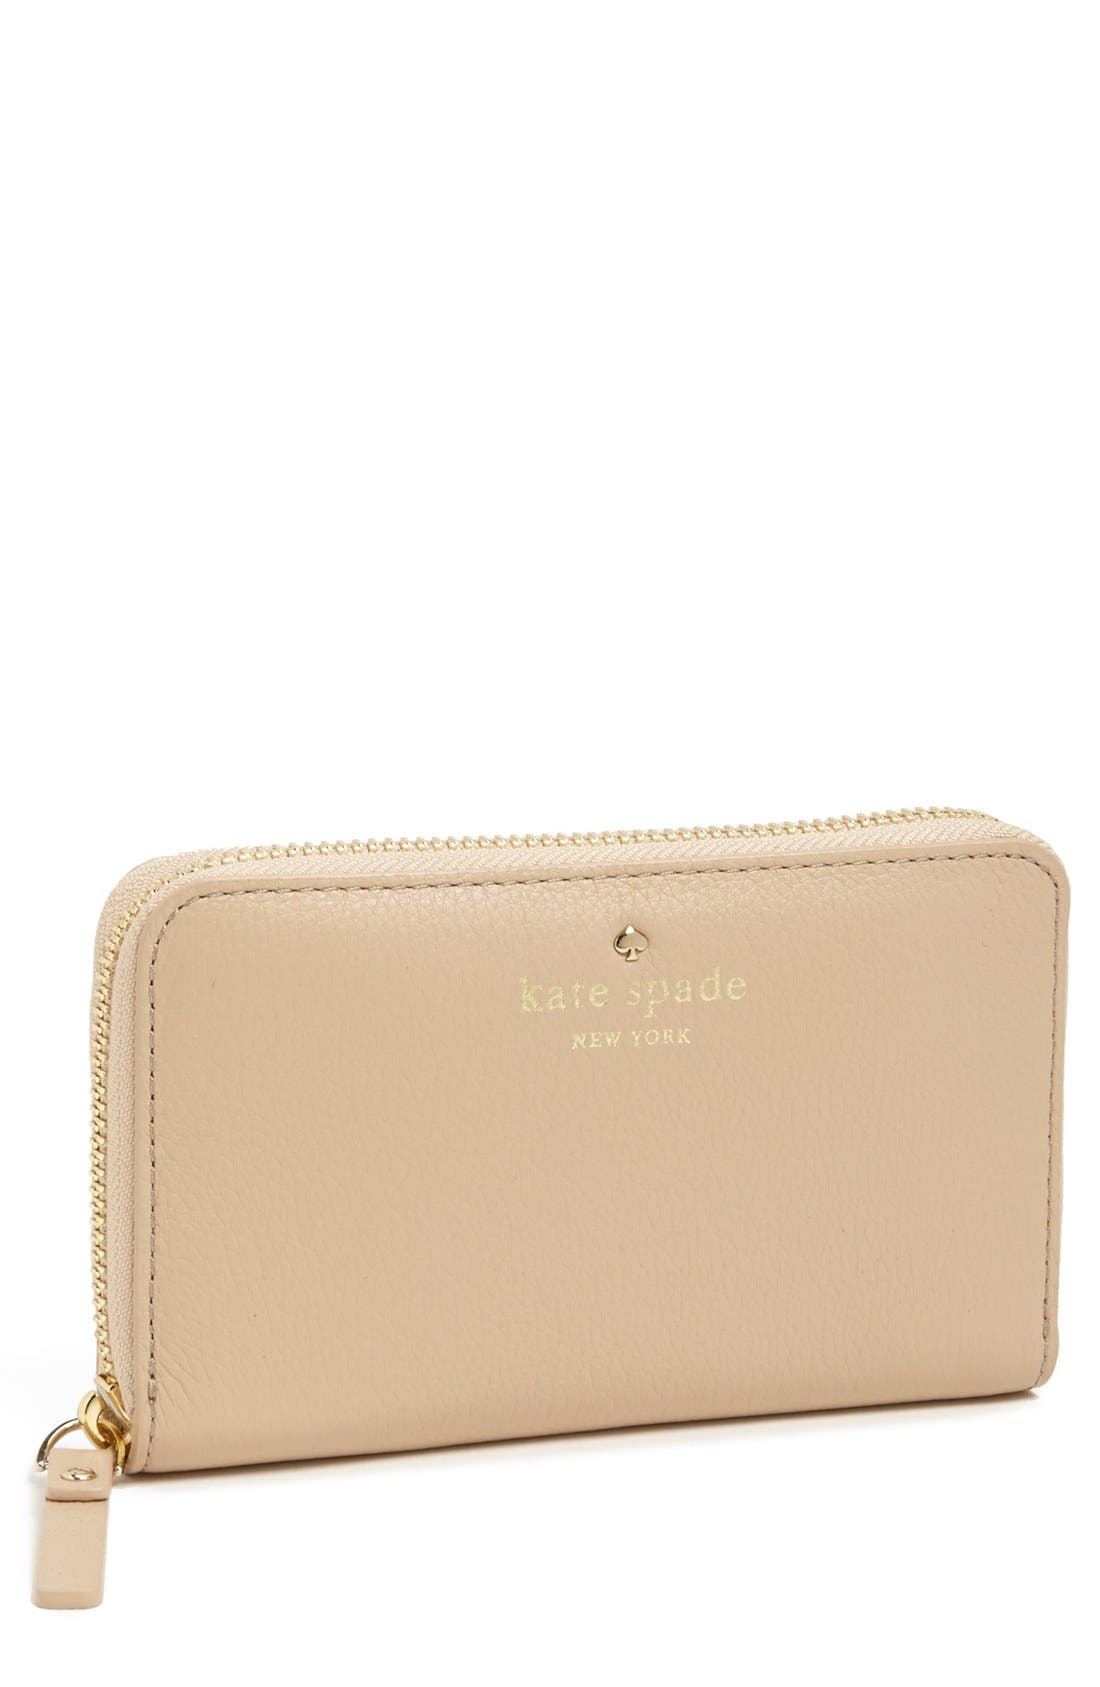 Alternate Image 1 Selected - kate spade new york 'lacey - small' zip wallet